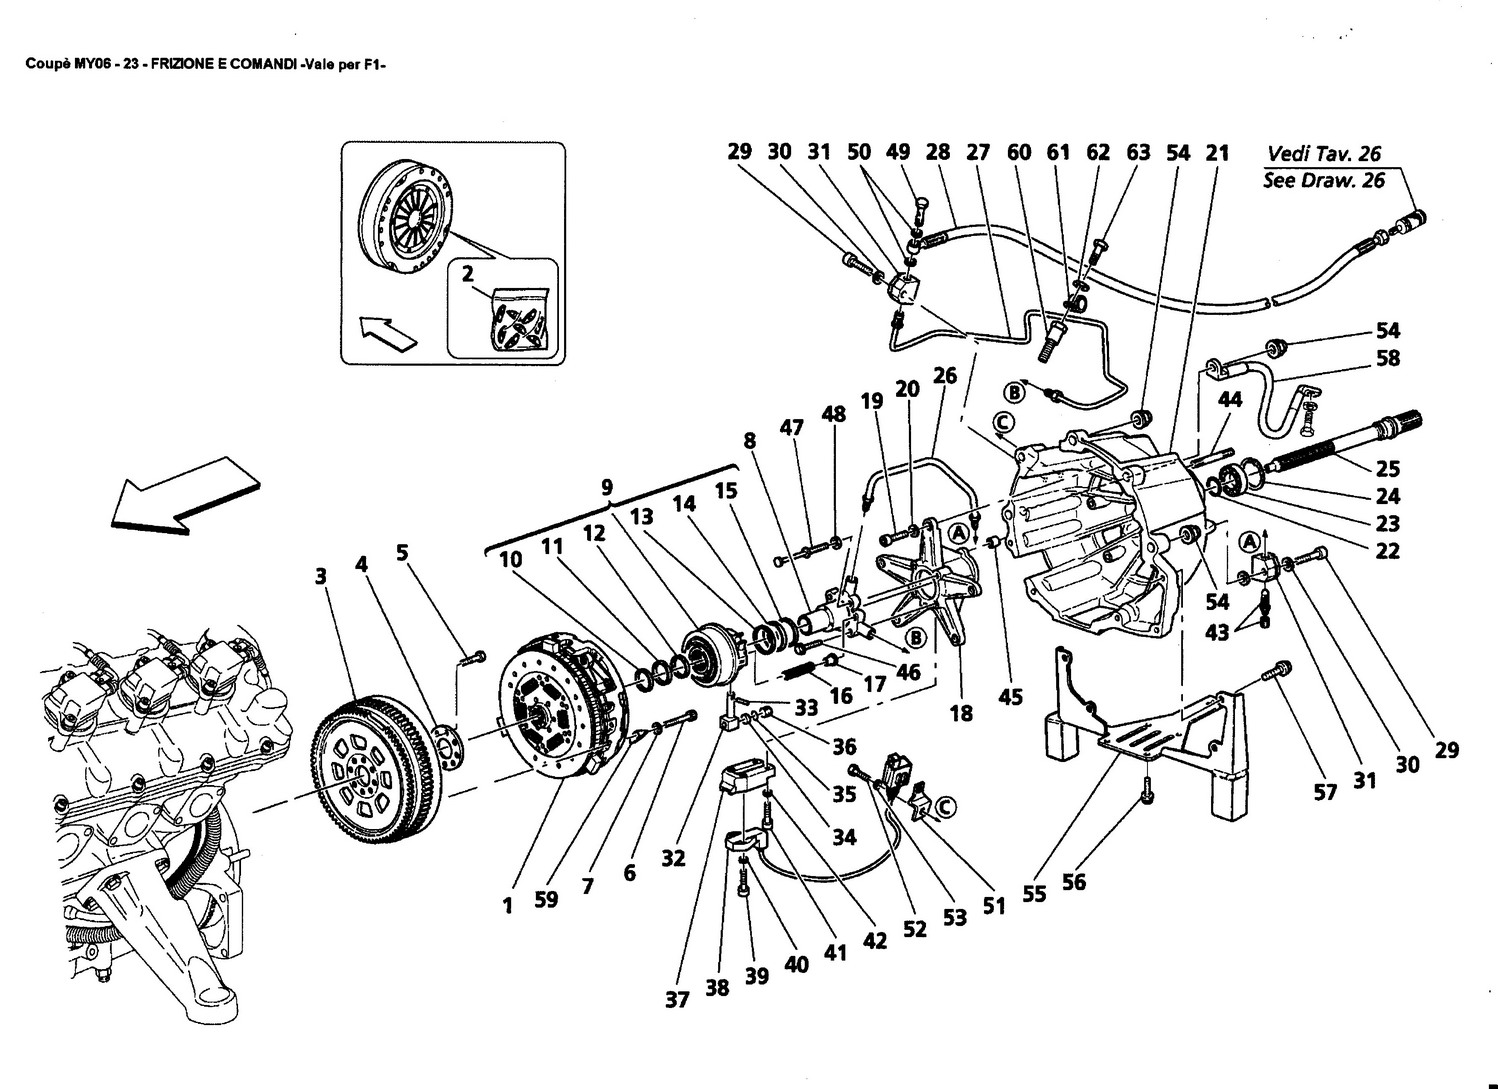 Chevy Trailblazer Transmission Control Solenoid Location further Fuse Box Diagram 2009 Fuse Box Numbers 2002 Nissan Sentra Relay together with Dodge Dakota 5 9 2001 Specs And Images likewise Discussion T17815 ds681545 besides 1999 Gmc Jimmy Vacuum Pump Diagram. on 1991 dodge stealth transmission diagram